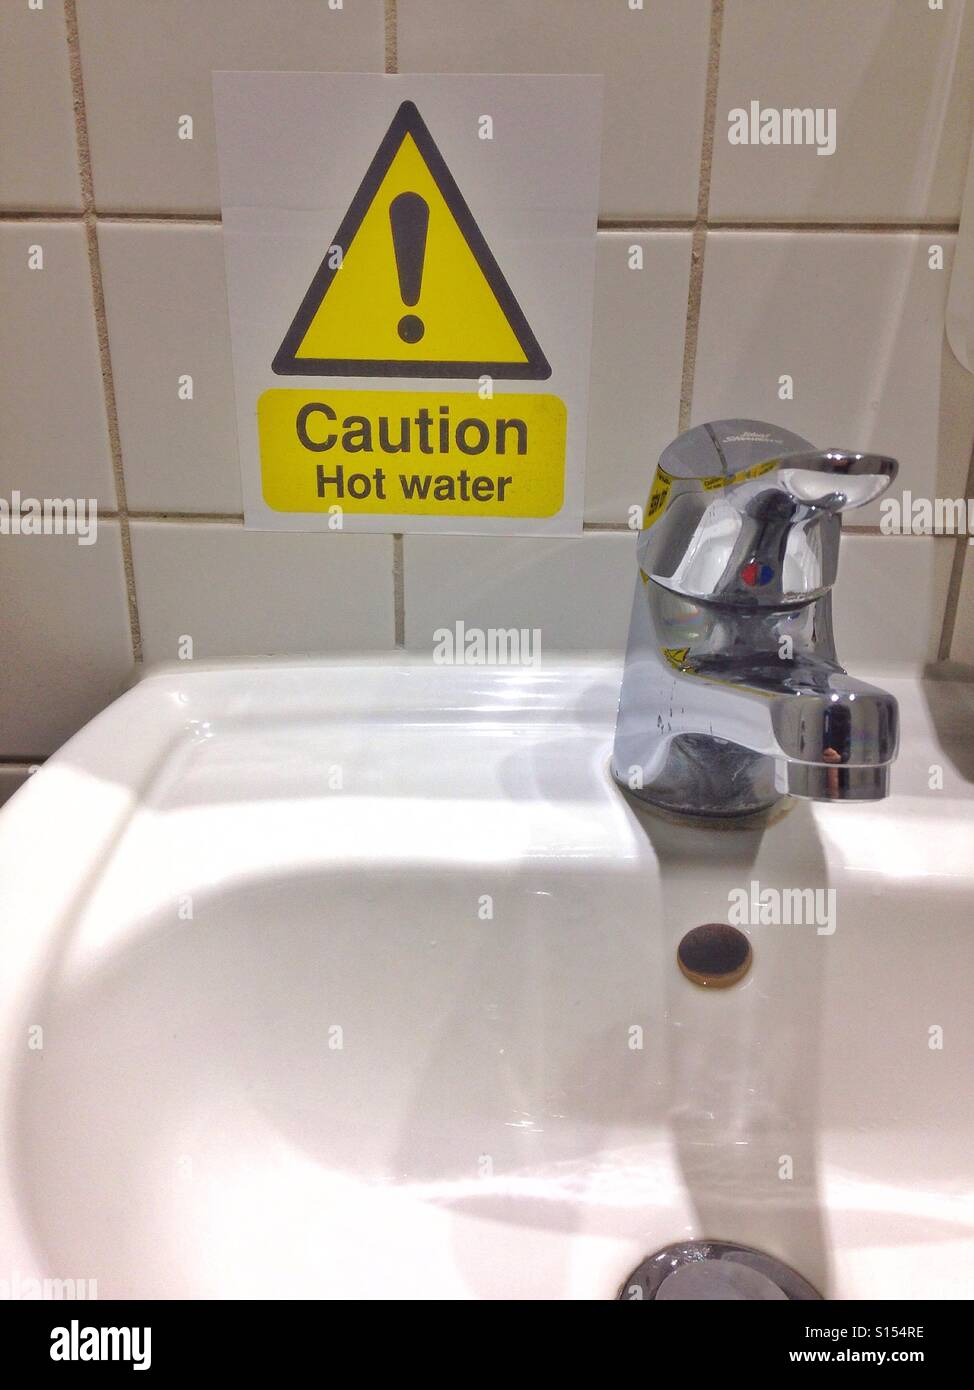 A warning label next to a sink warning that the water may be hot. - Stock Image